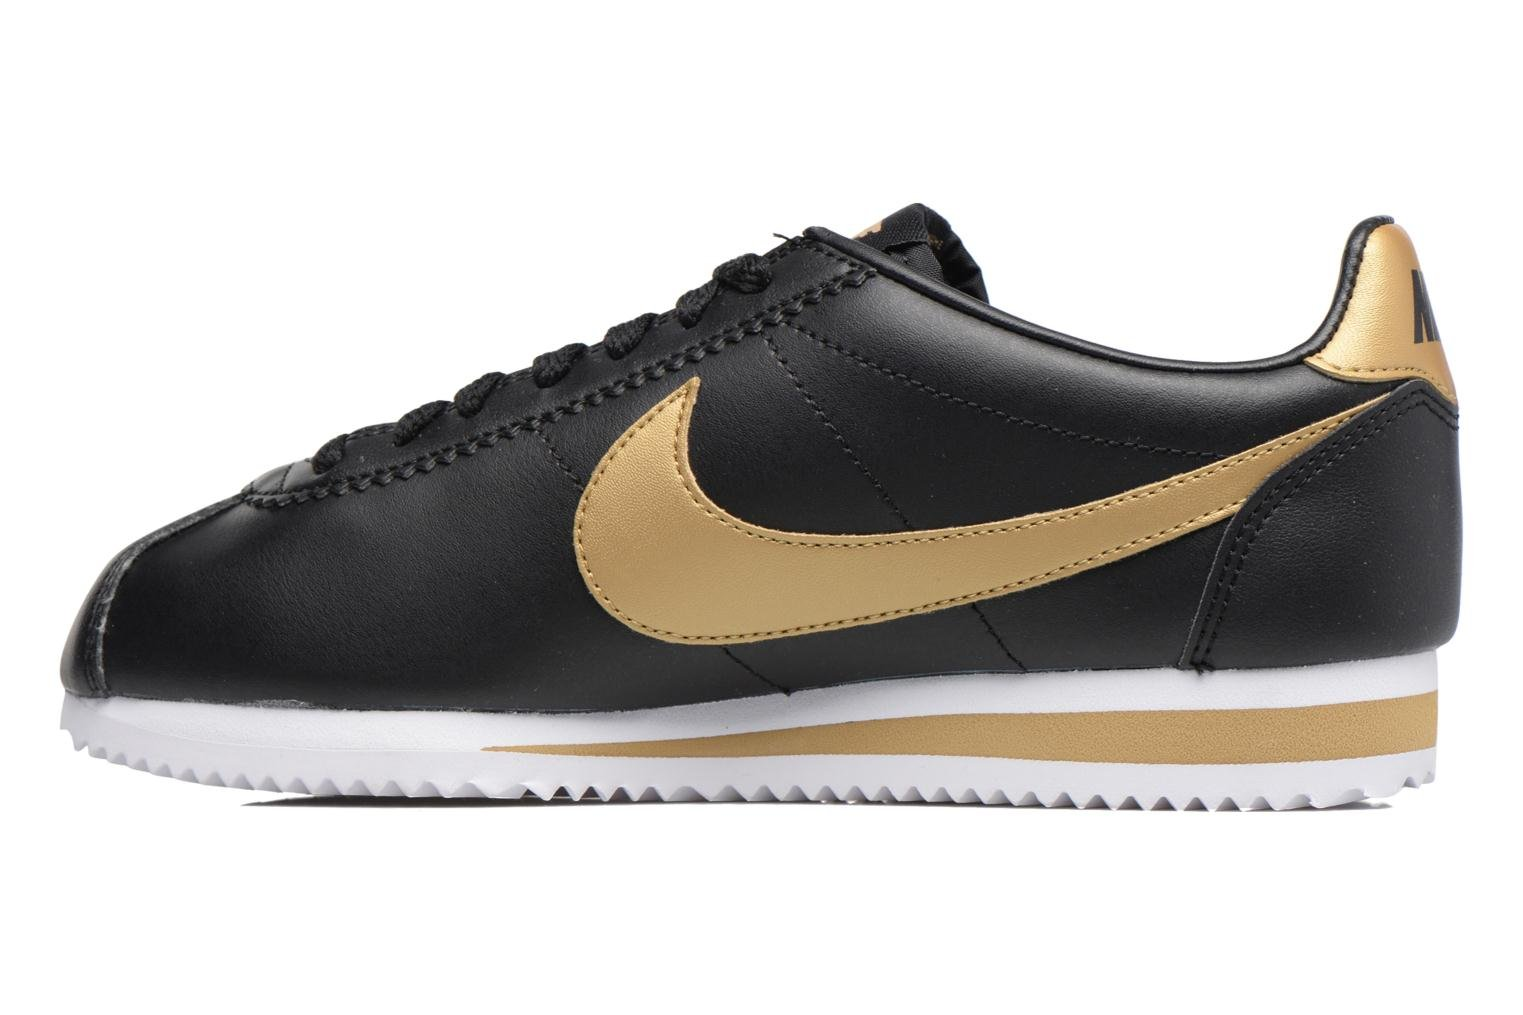 Wmns Classic Cortez Leather Black/metallic gold